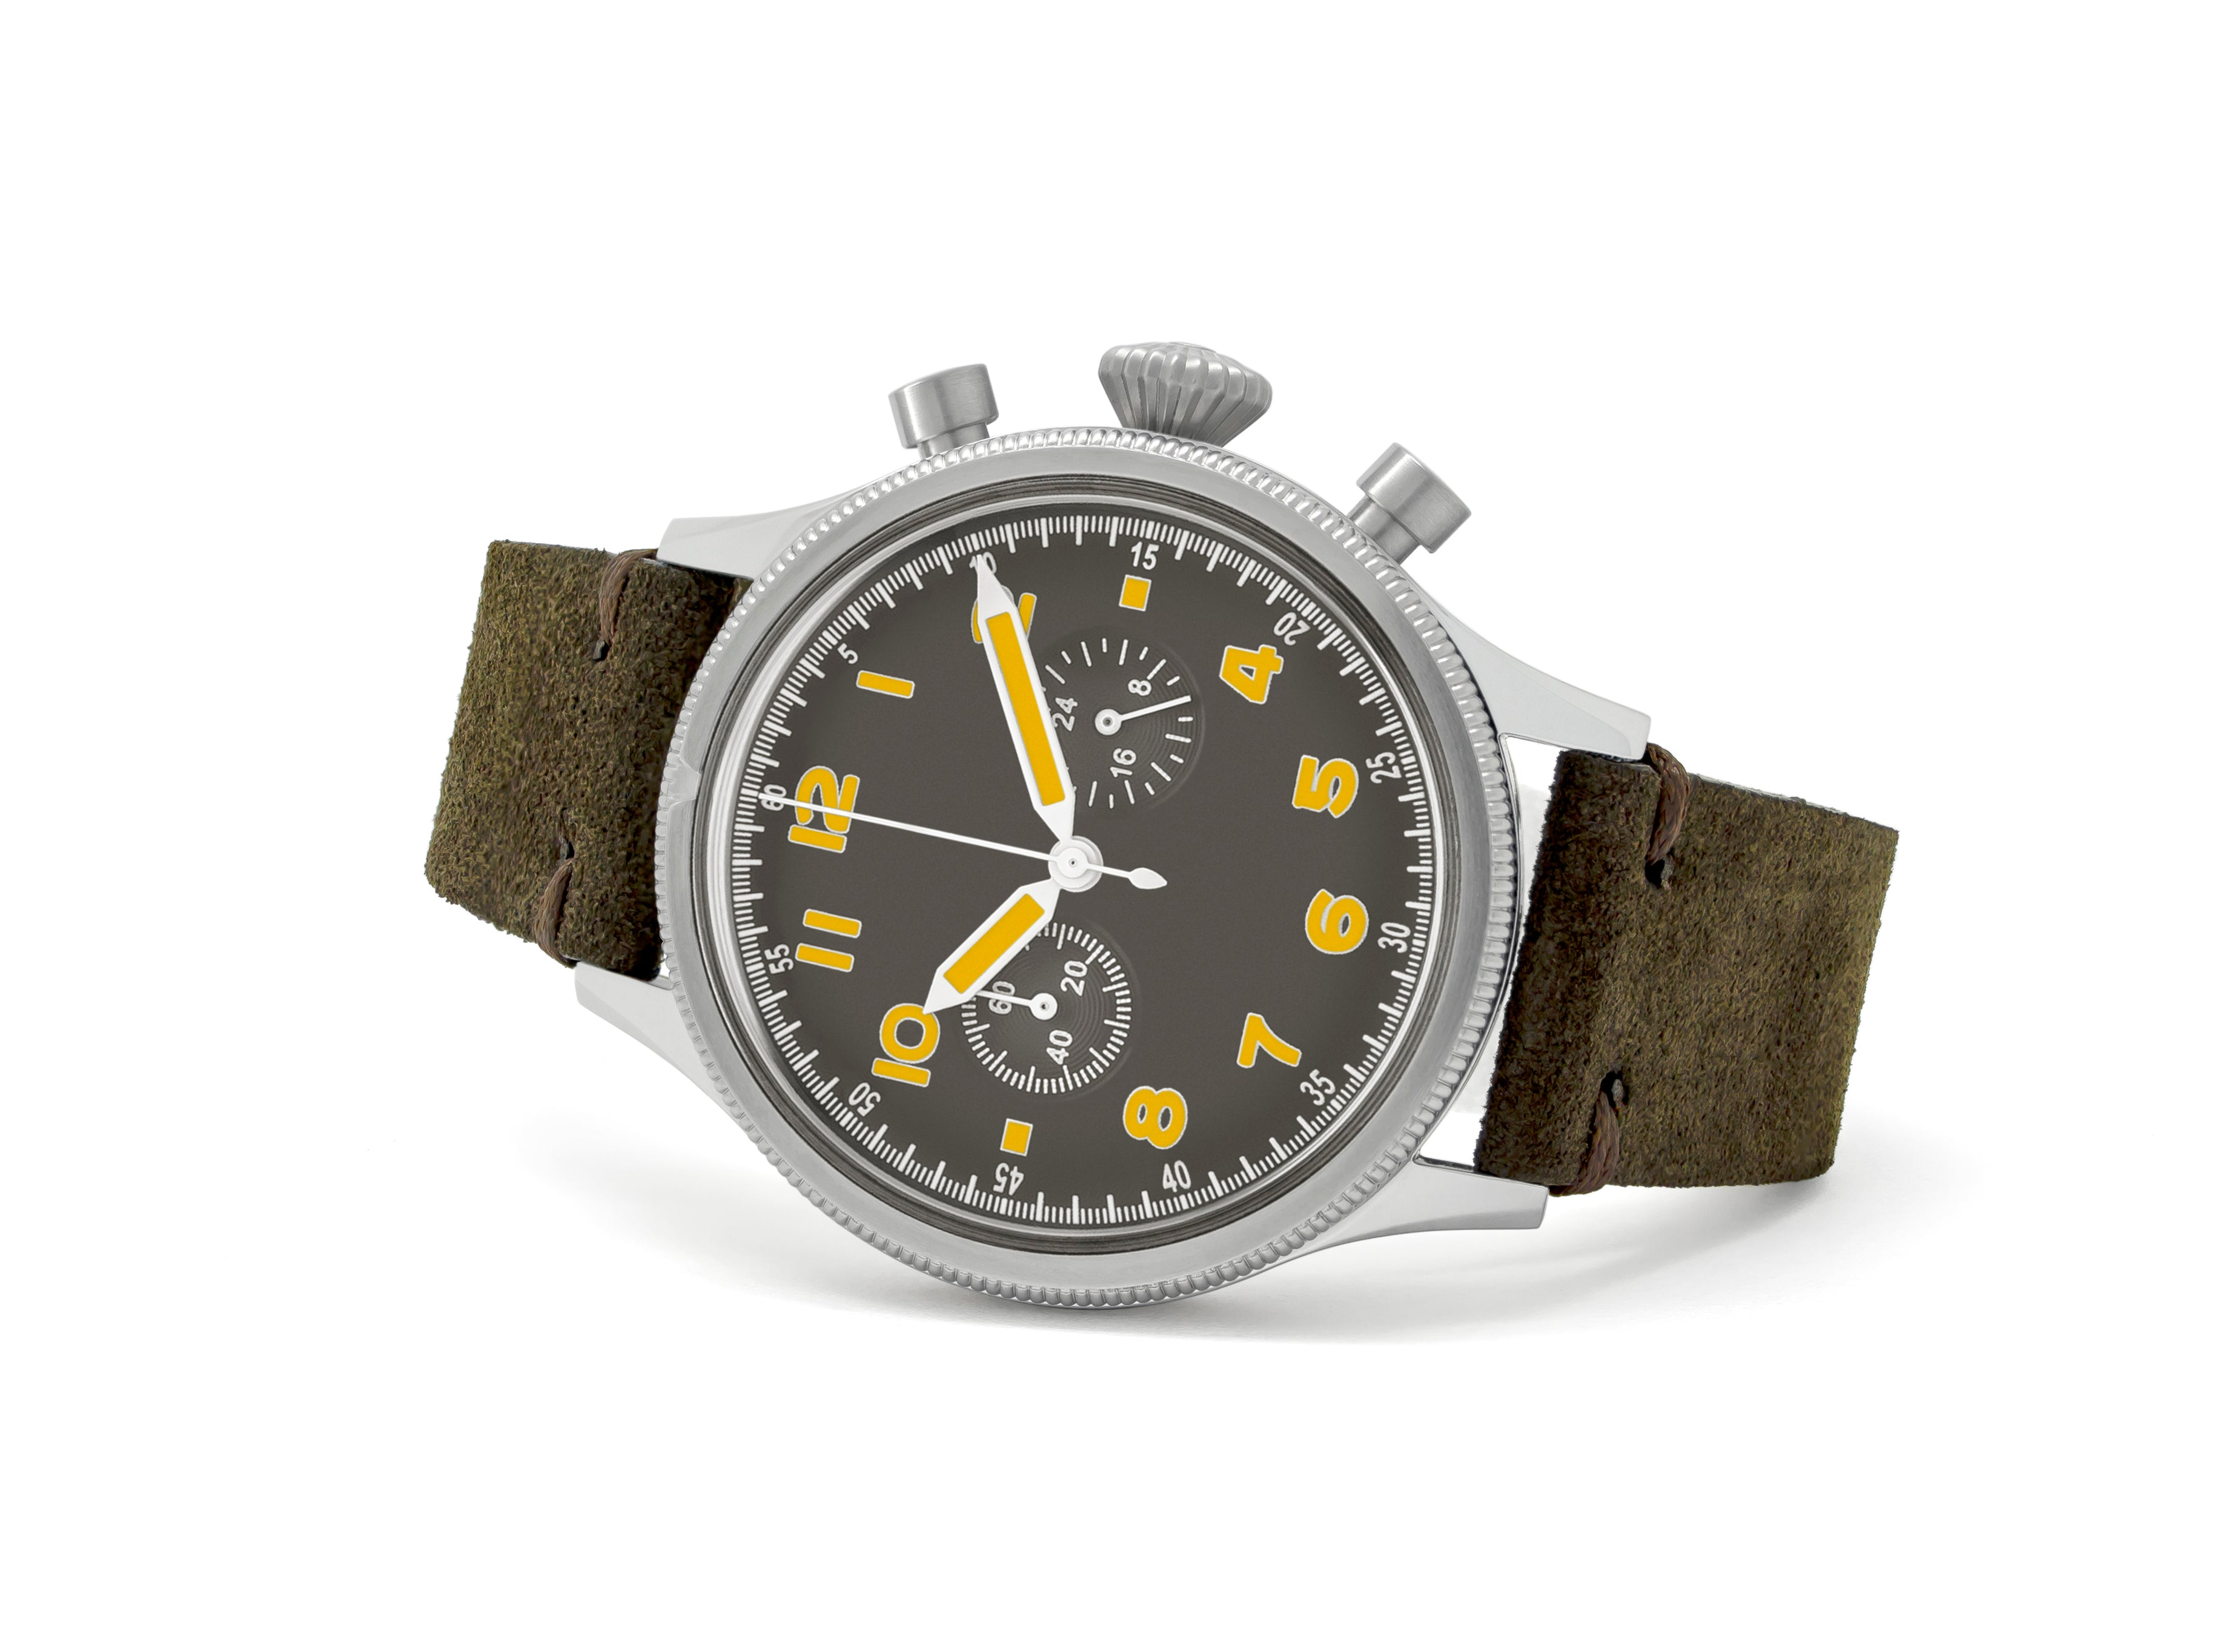 unisex grey and brown watch on its side